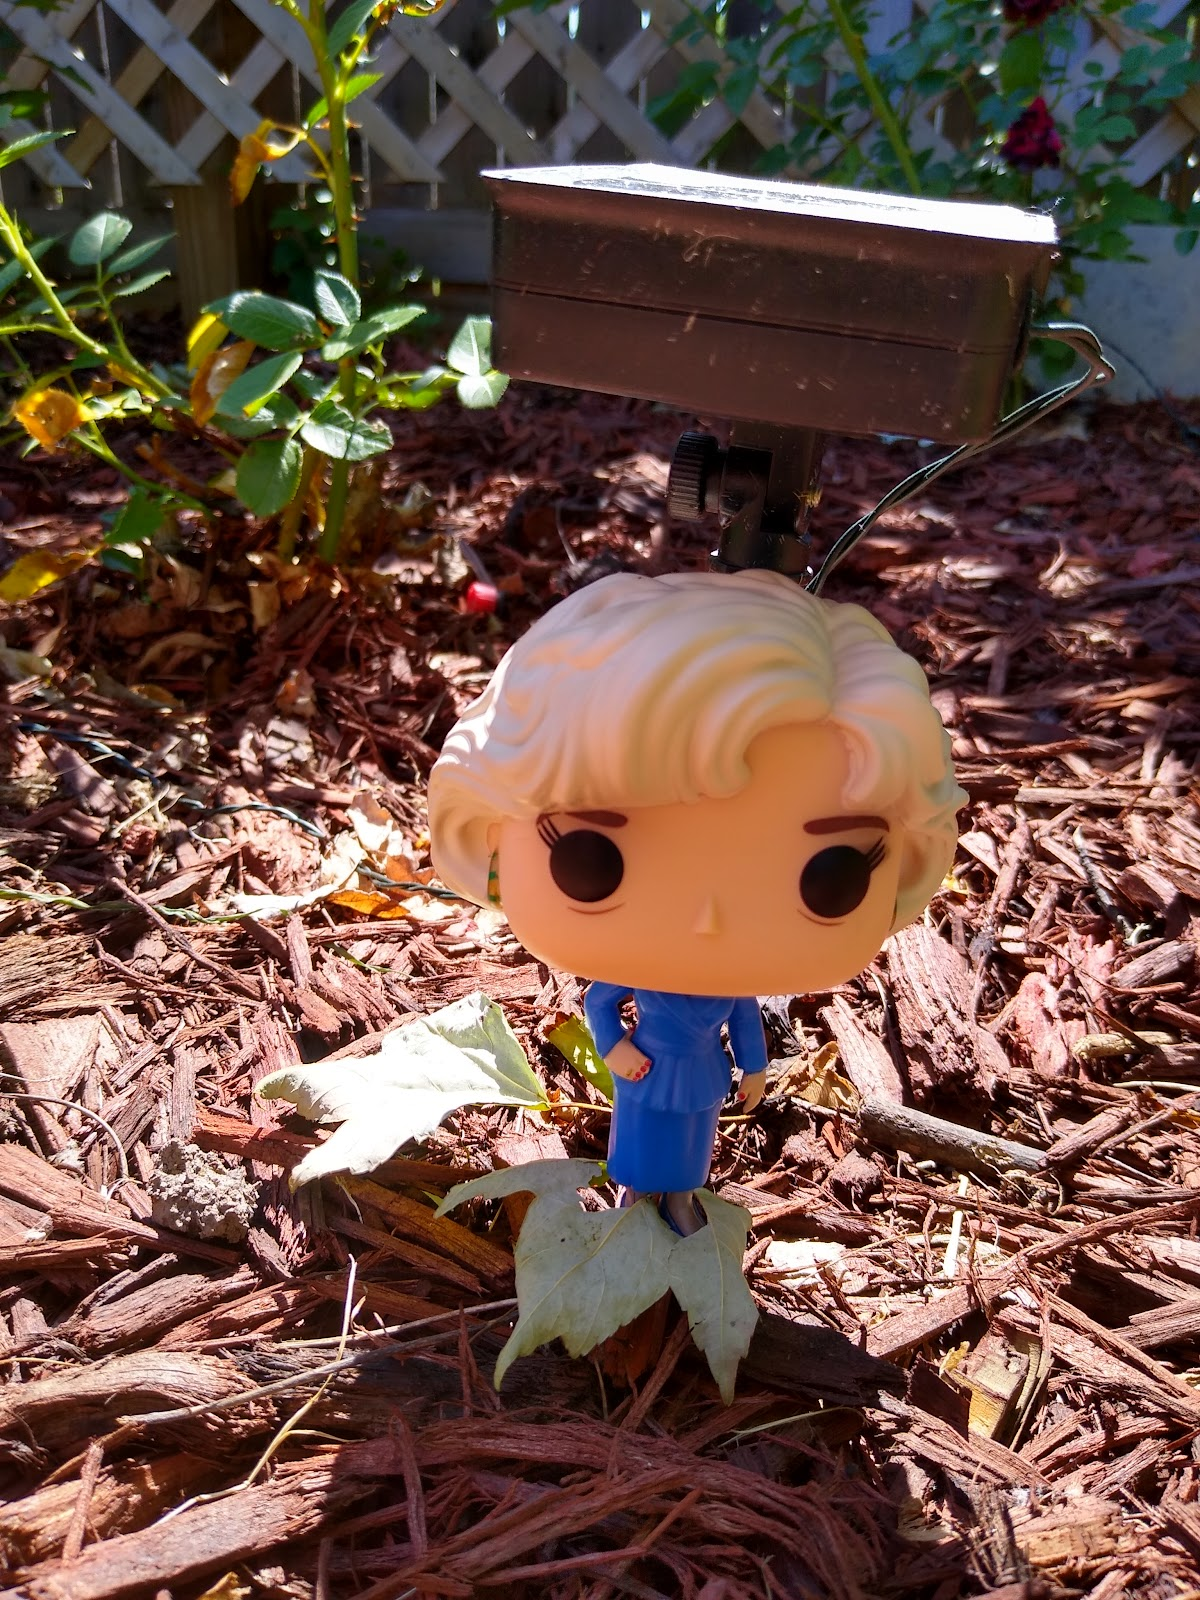 rose nylund funko pop picture